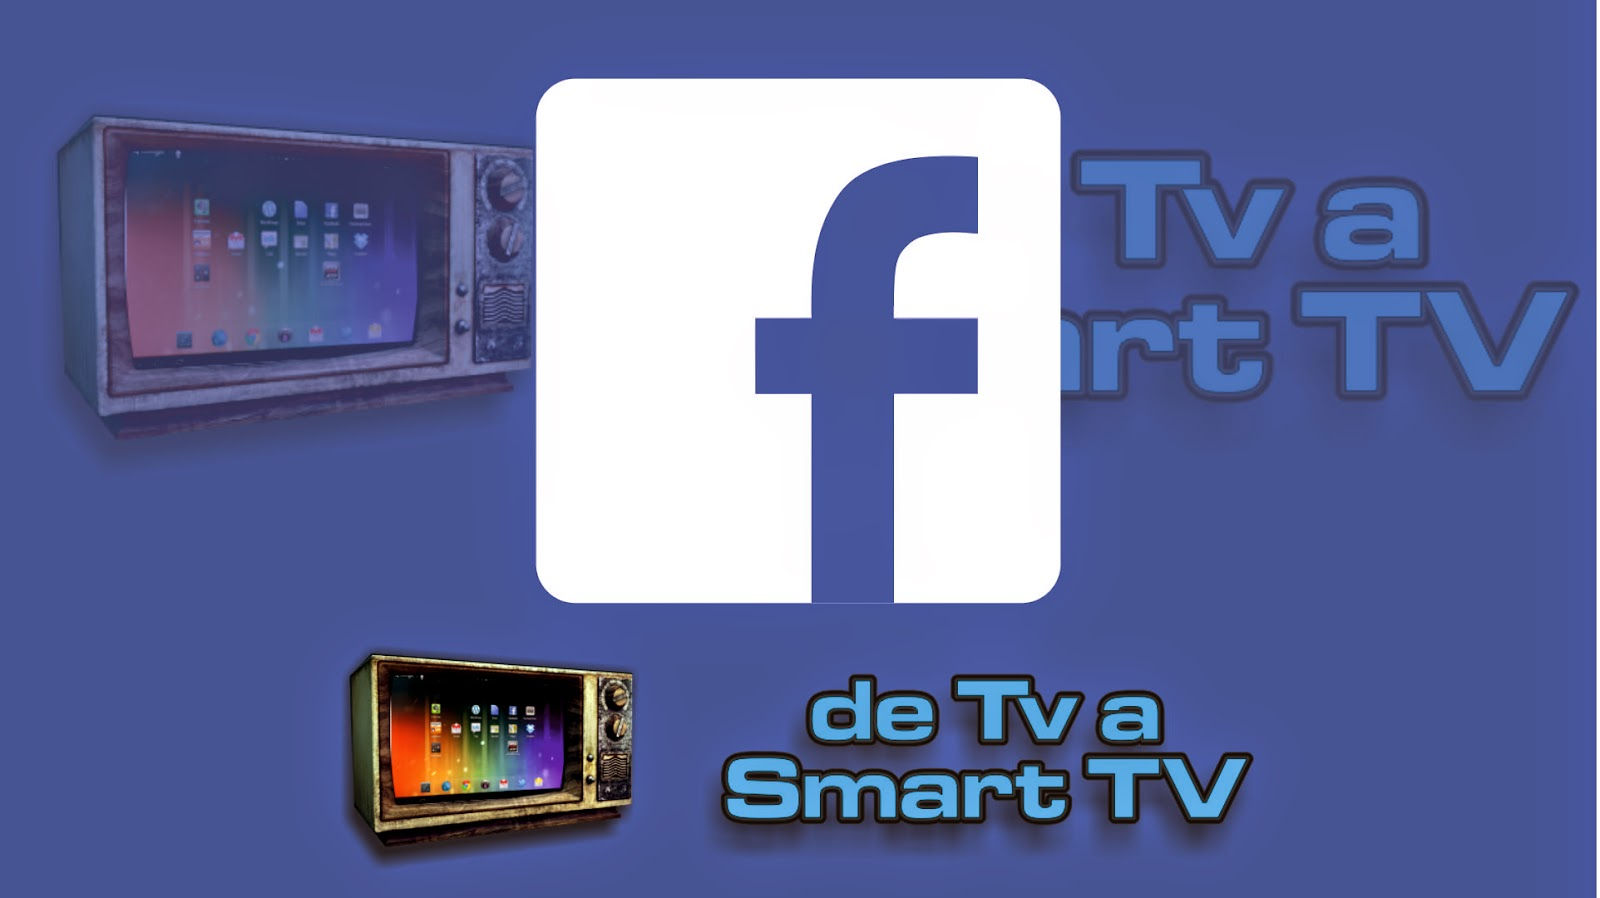 Facebook - De TV a SmartTV